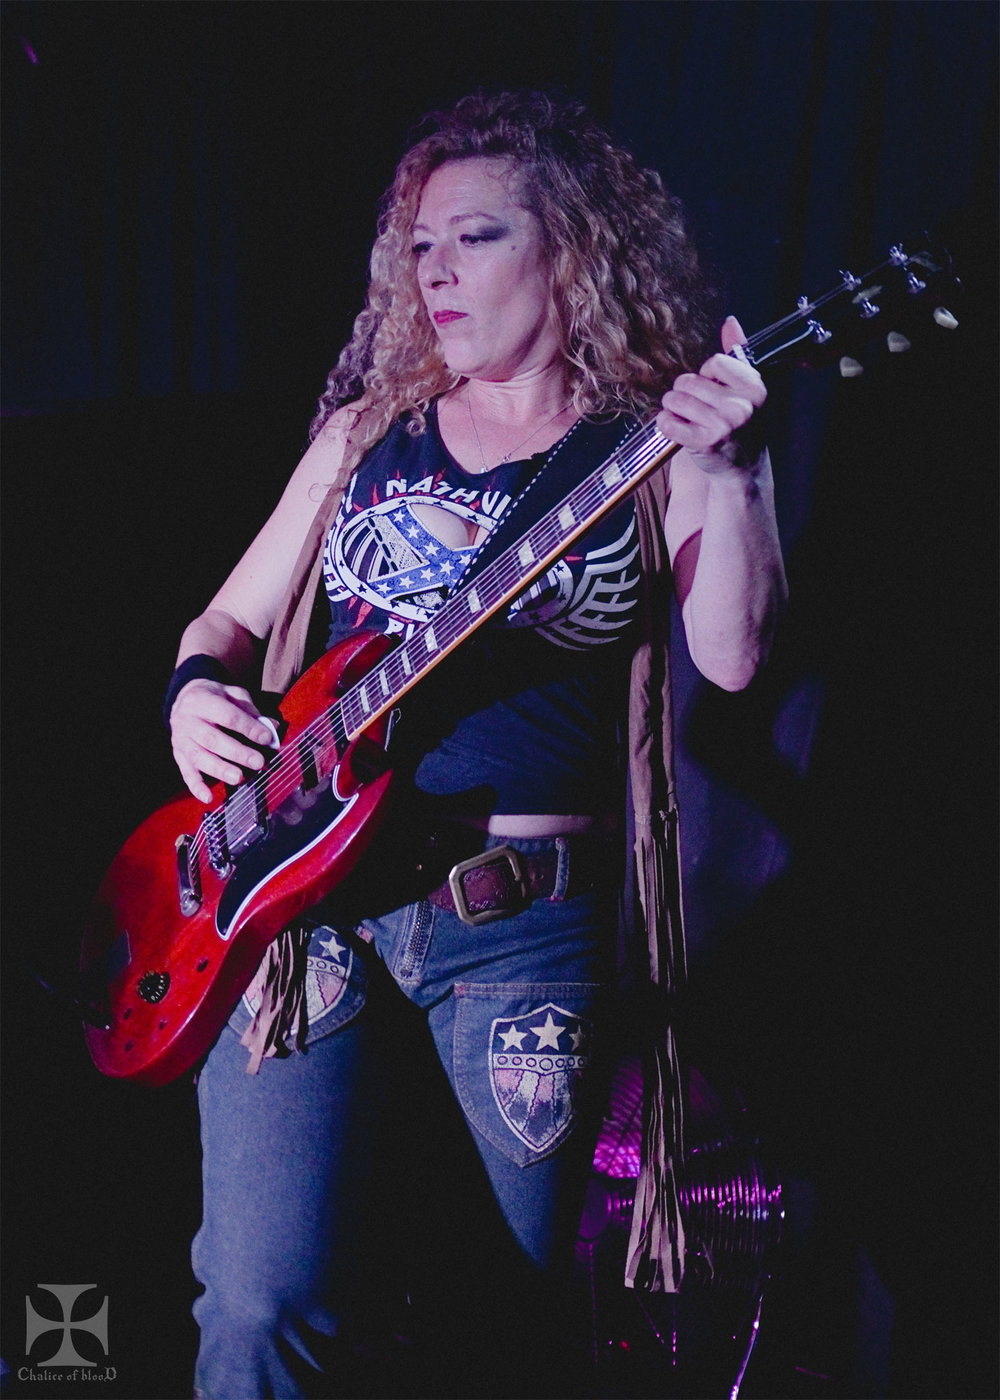 2017.05-Nashville-Pussy---211-Exposure-watermarked.jpg